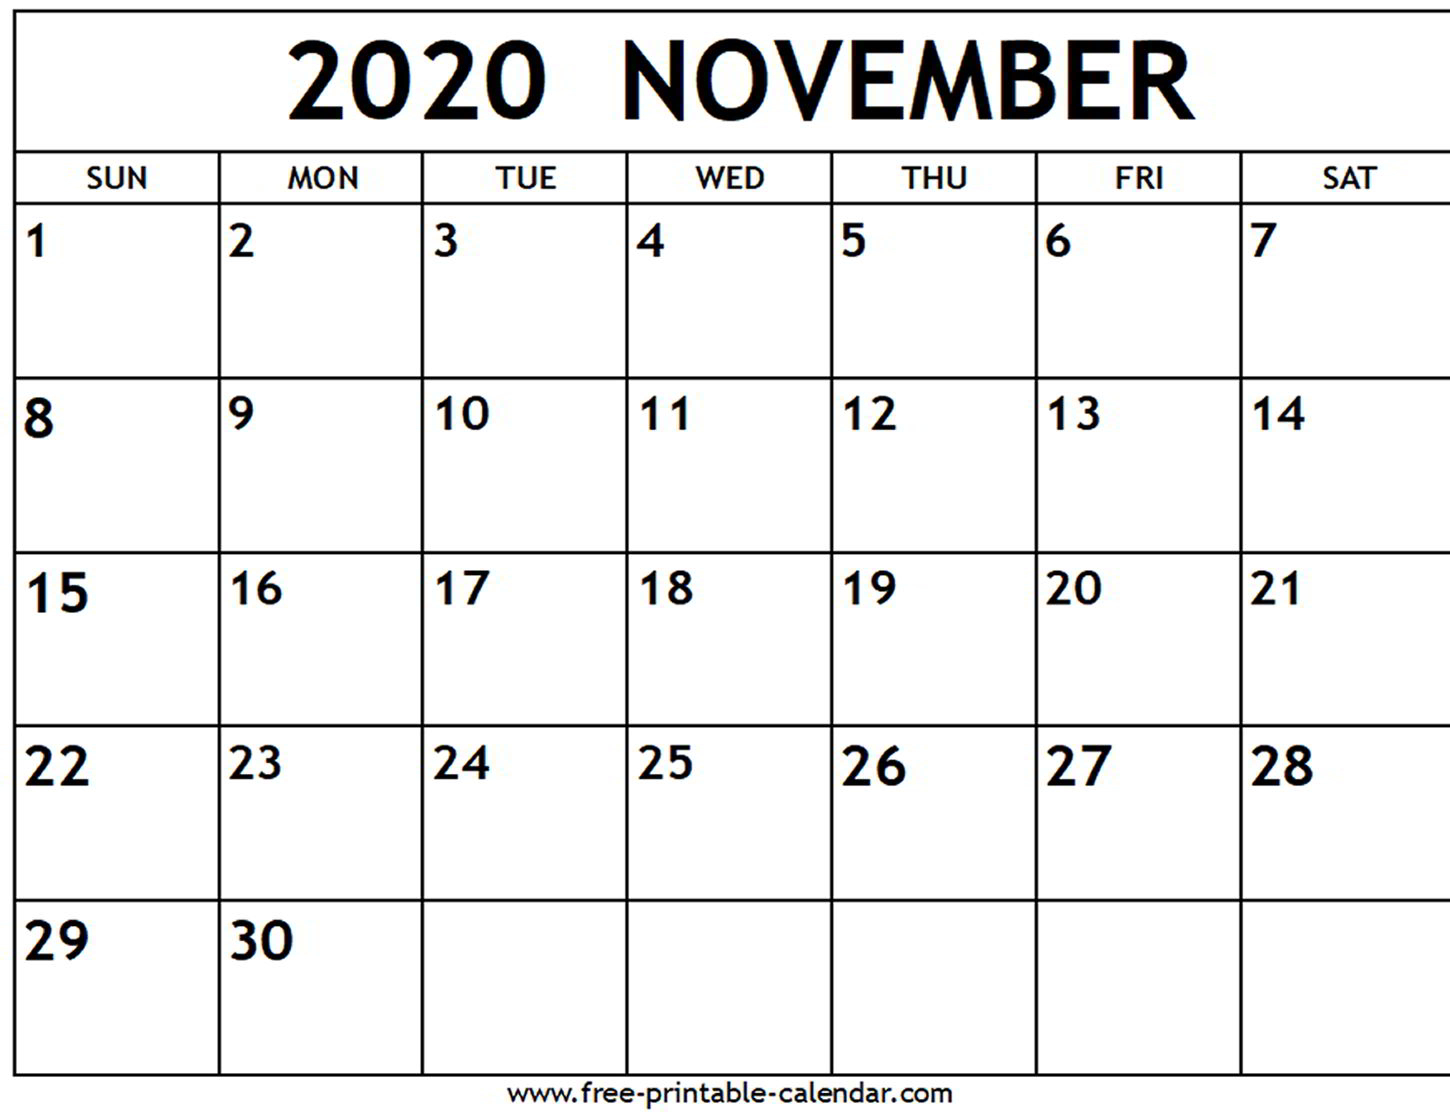 November 2020 Calendar Template  Bolan.horizonconsulting.co regarding November 2020 Calendar Excel